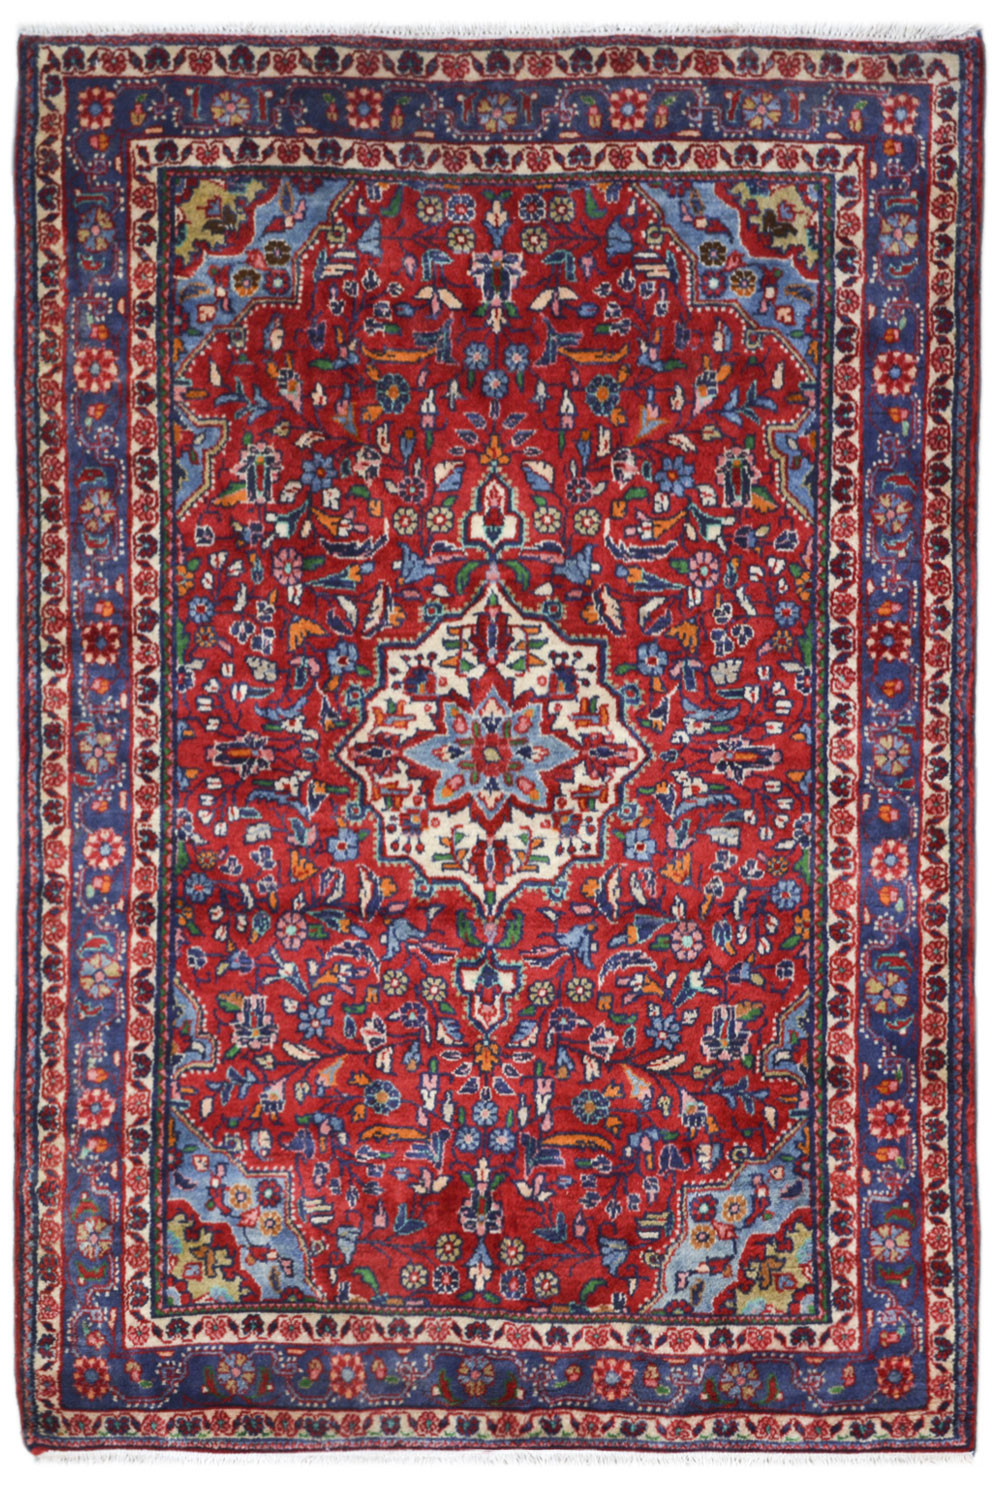 Buy Maroon Phool Kashan Afghan Carpet And Rugs On Sale At